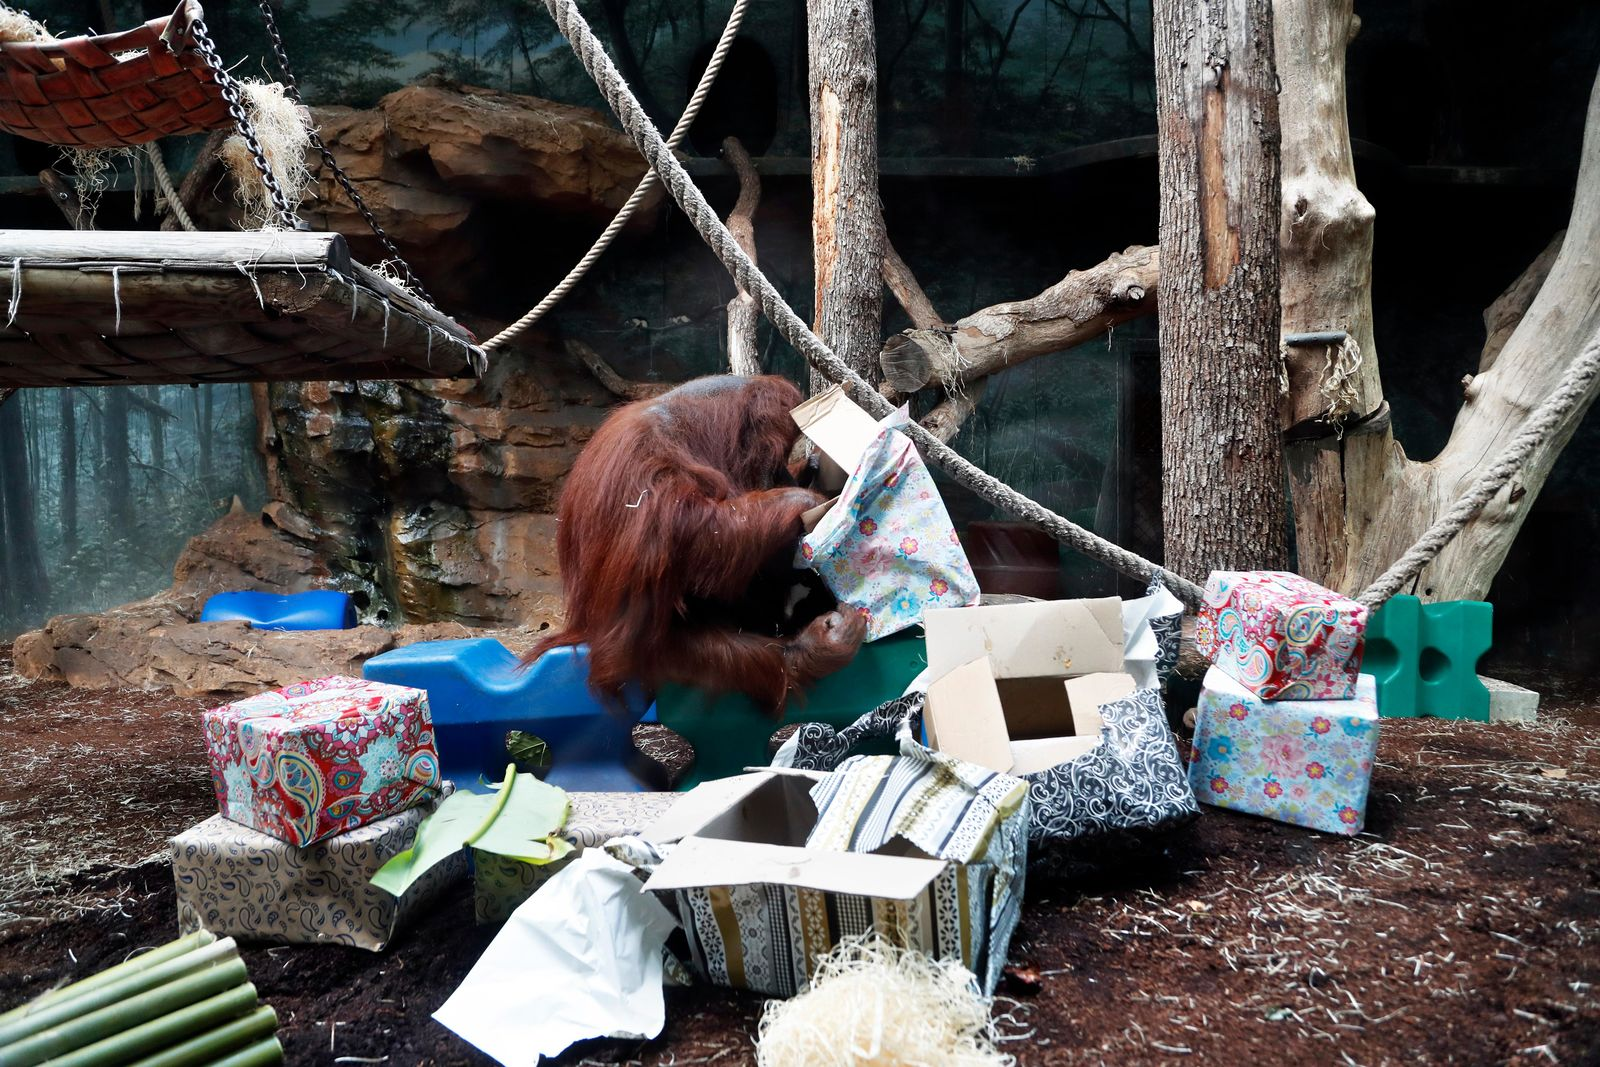 Orangutan Nenette opens presents as she celebrates her 50th birthday, at the Jardin des Plantes zoo, in Paris, Sunday, June 16, 2019. (AP Photo/Thibault Camus)